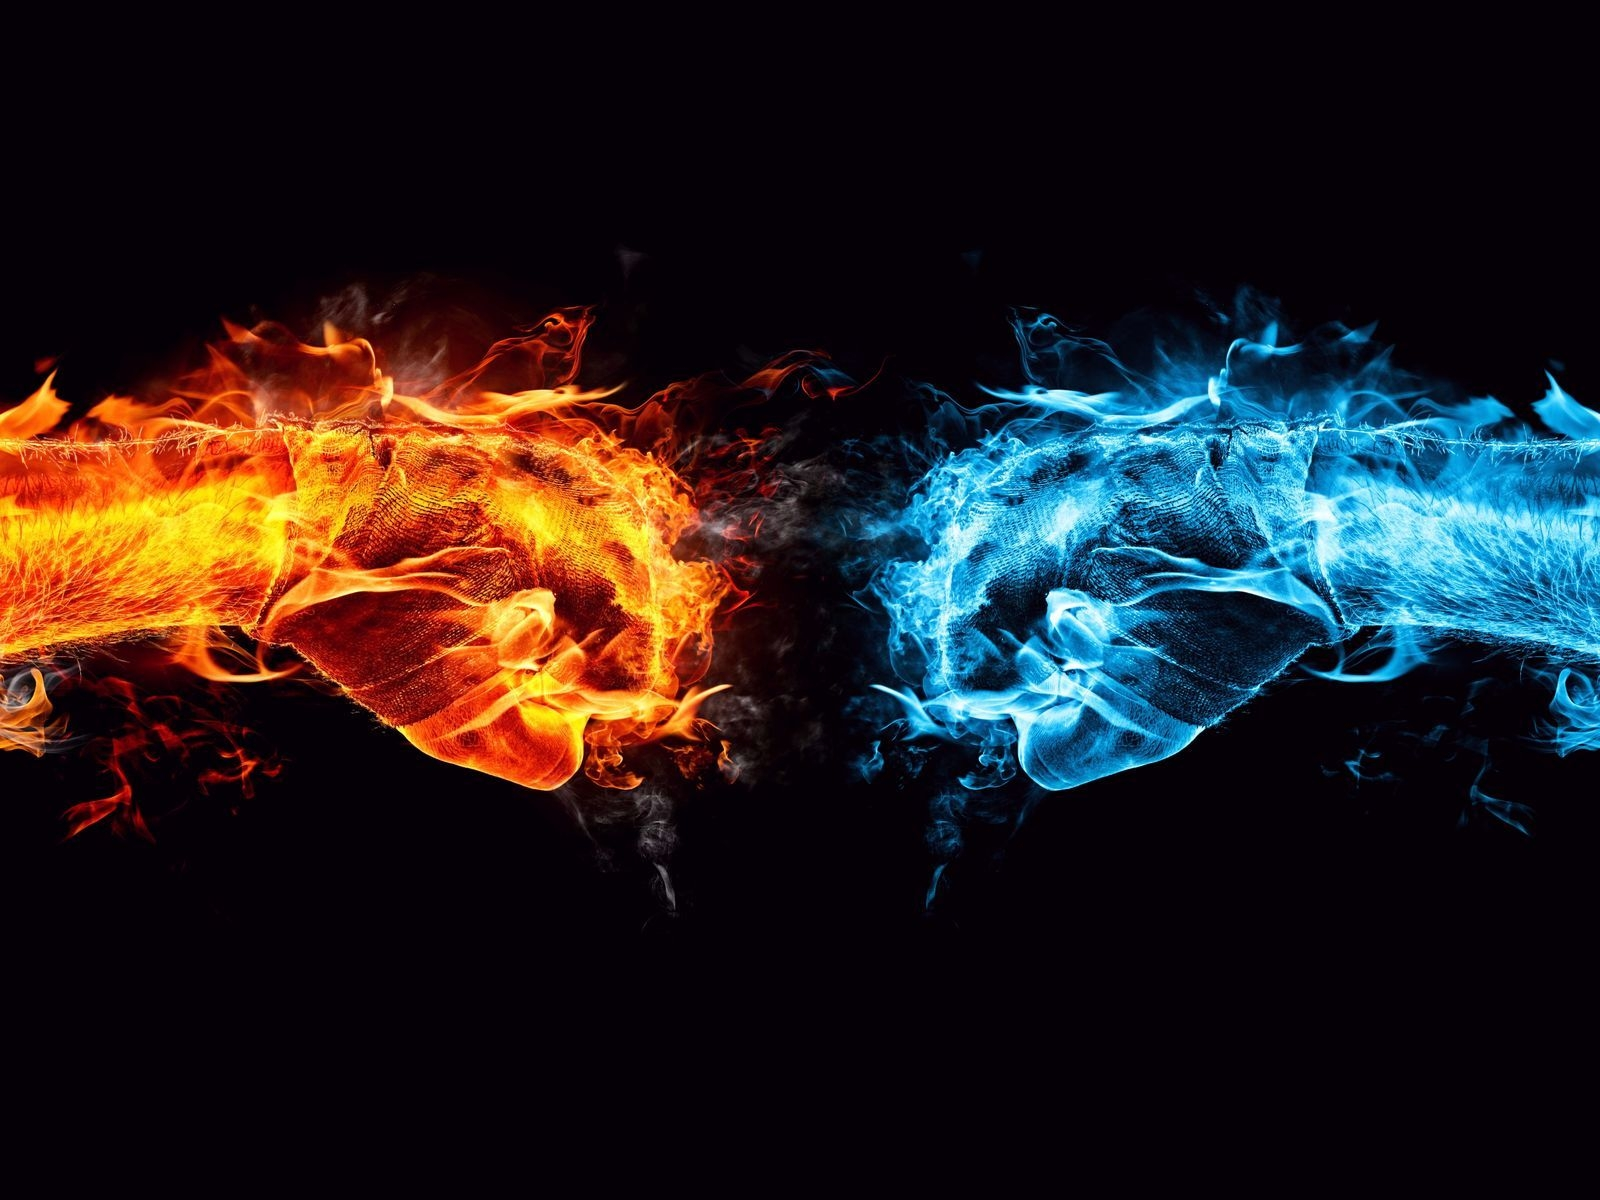 Fire and Ice Conflict for 1600 x 1200 resolution